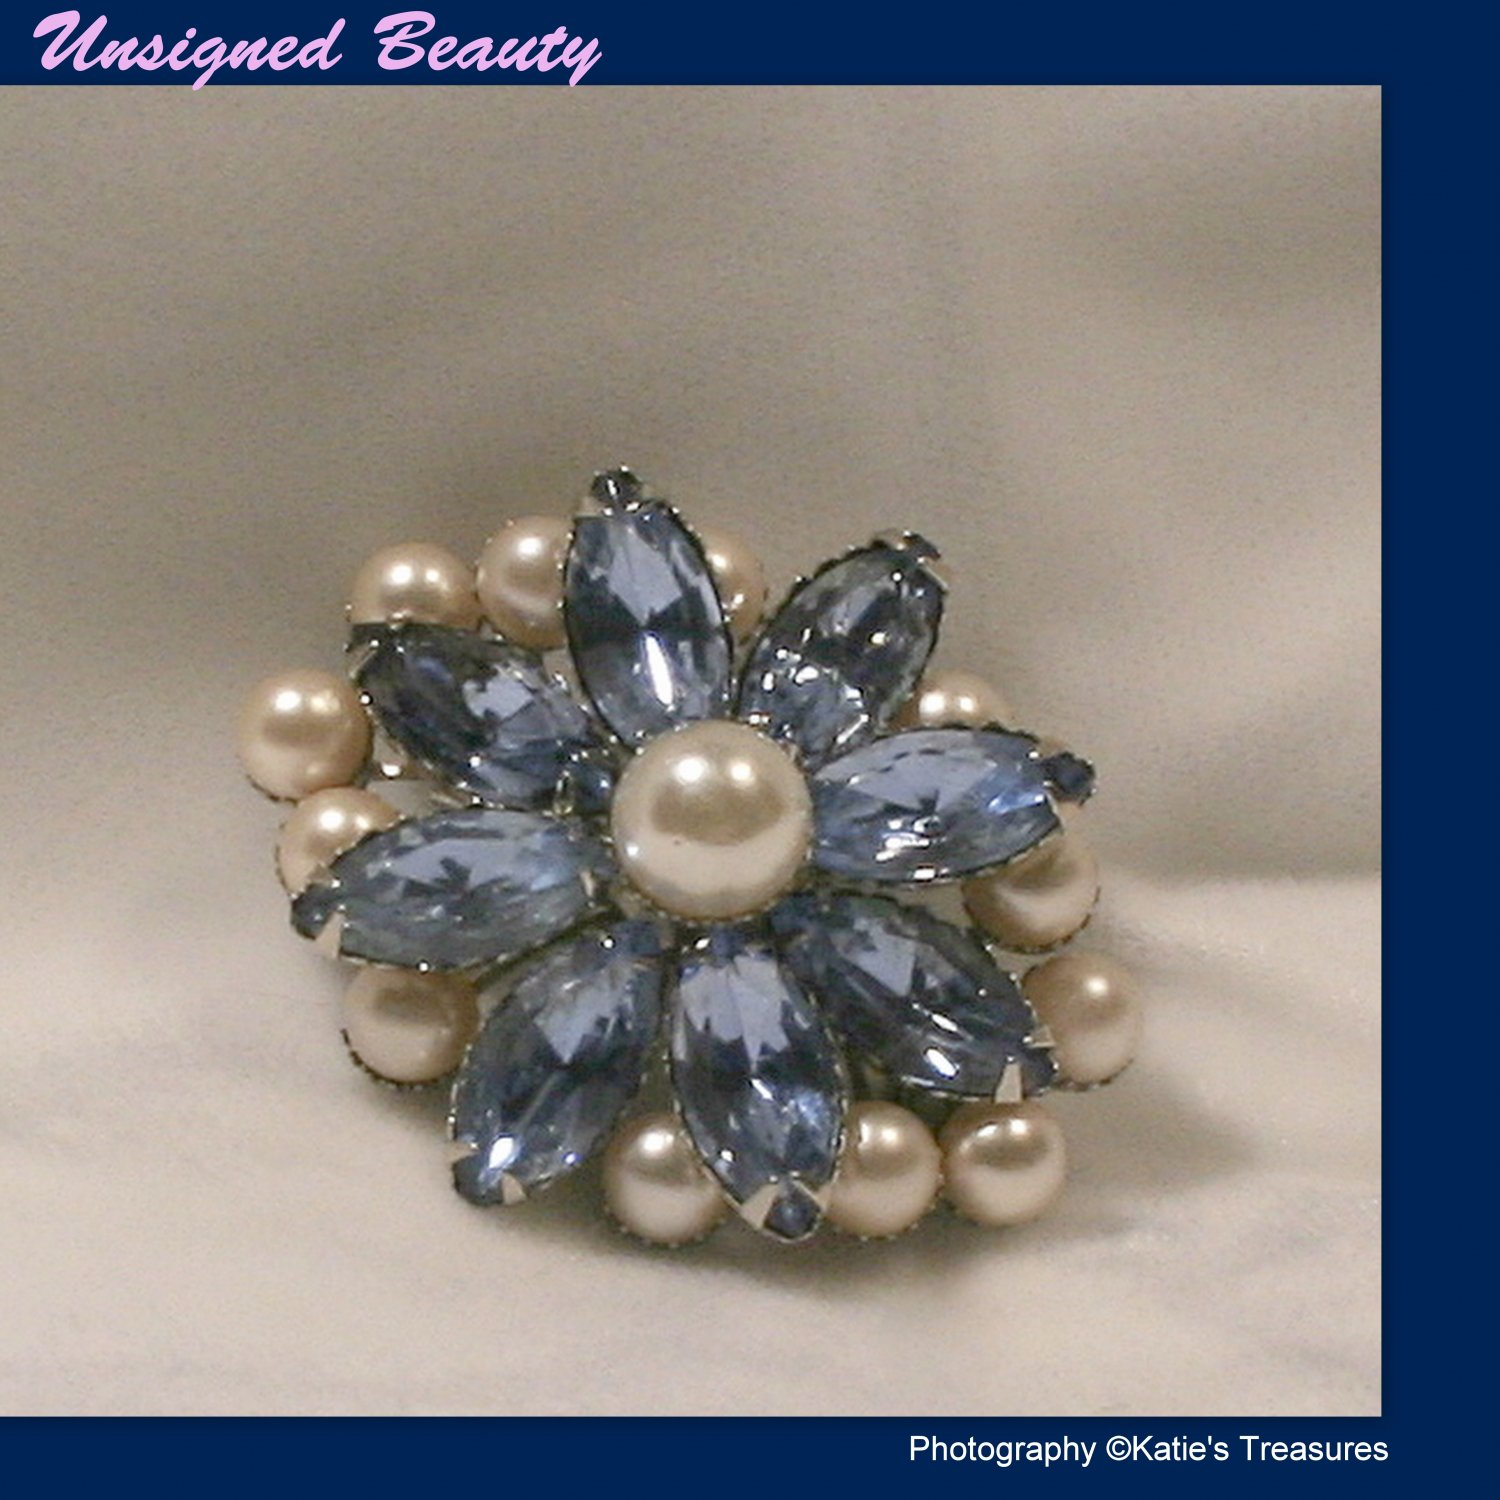 Sky Blue Glass Stones & Faux White Pearls Silver tone Brooch Fashion Jewelry Retro 50s 60s